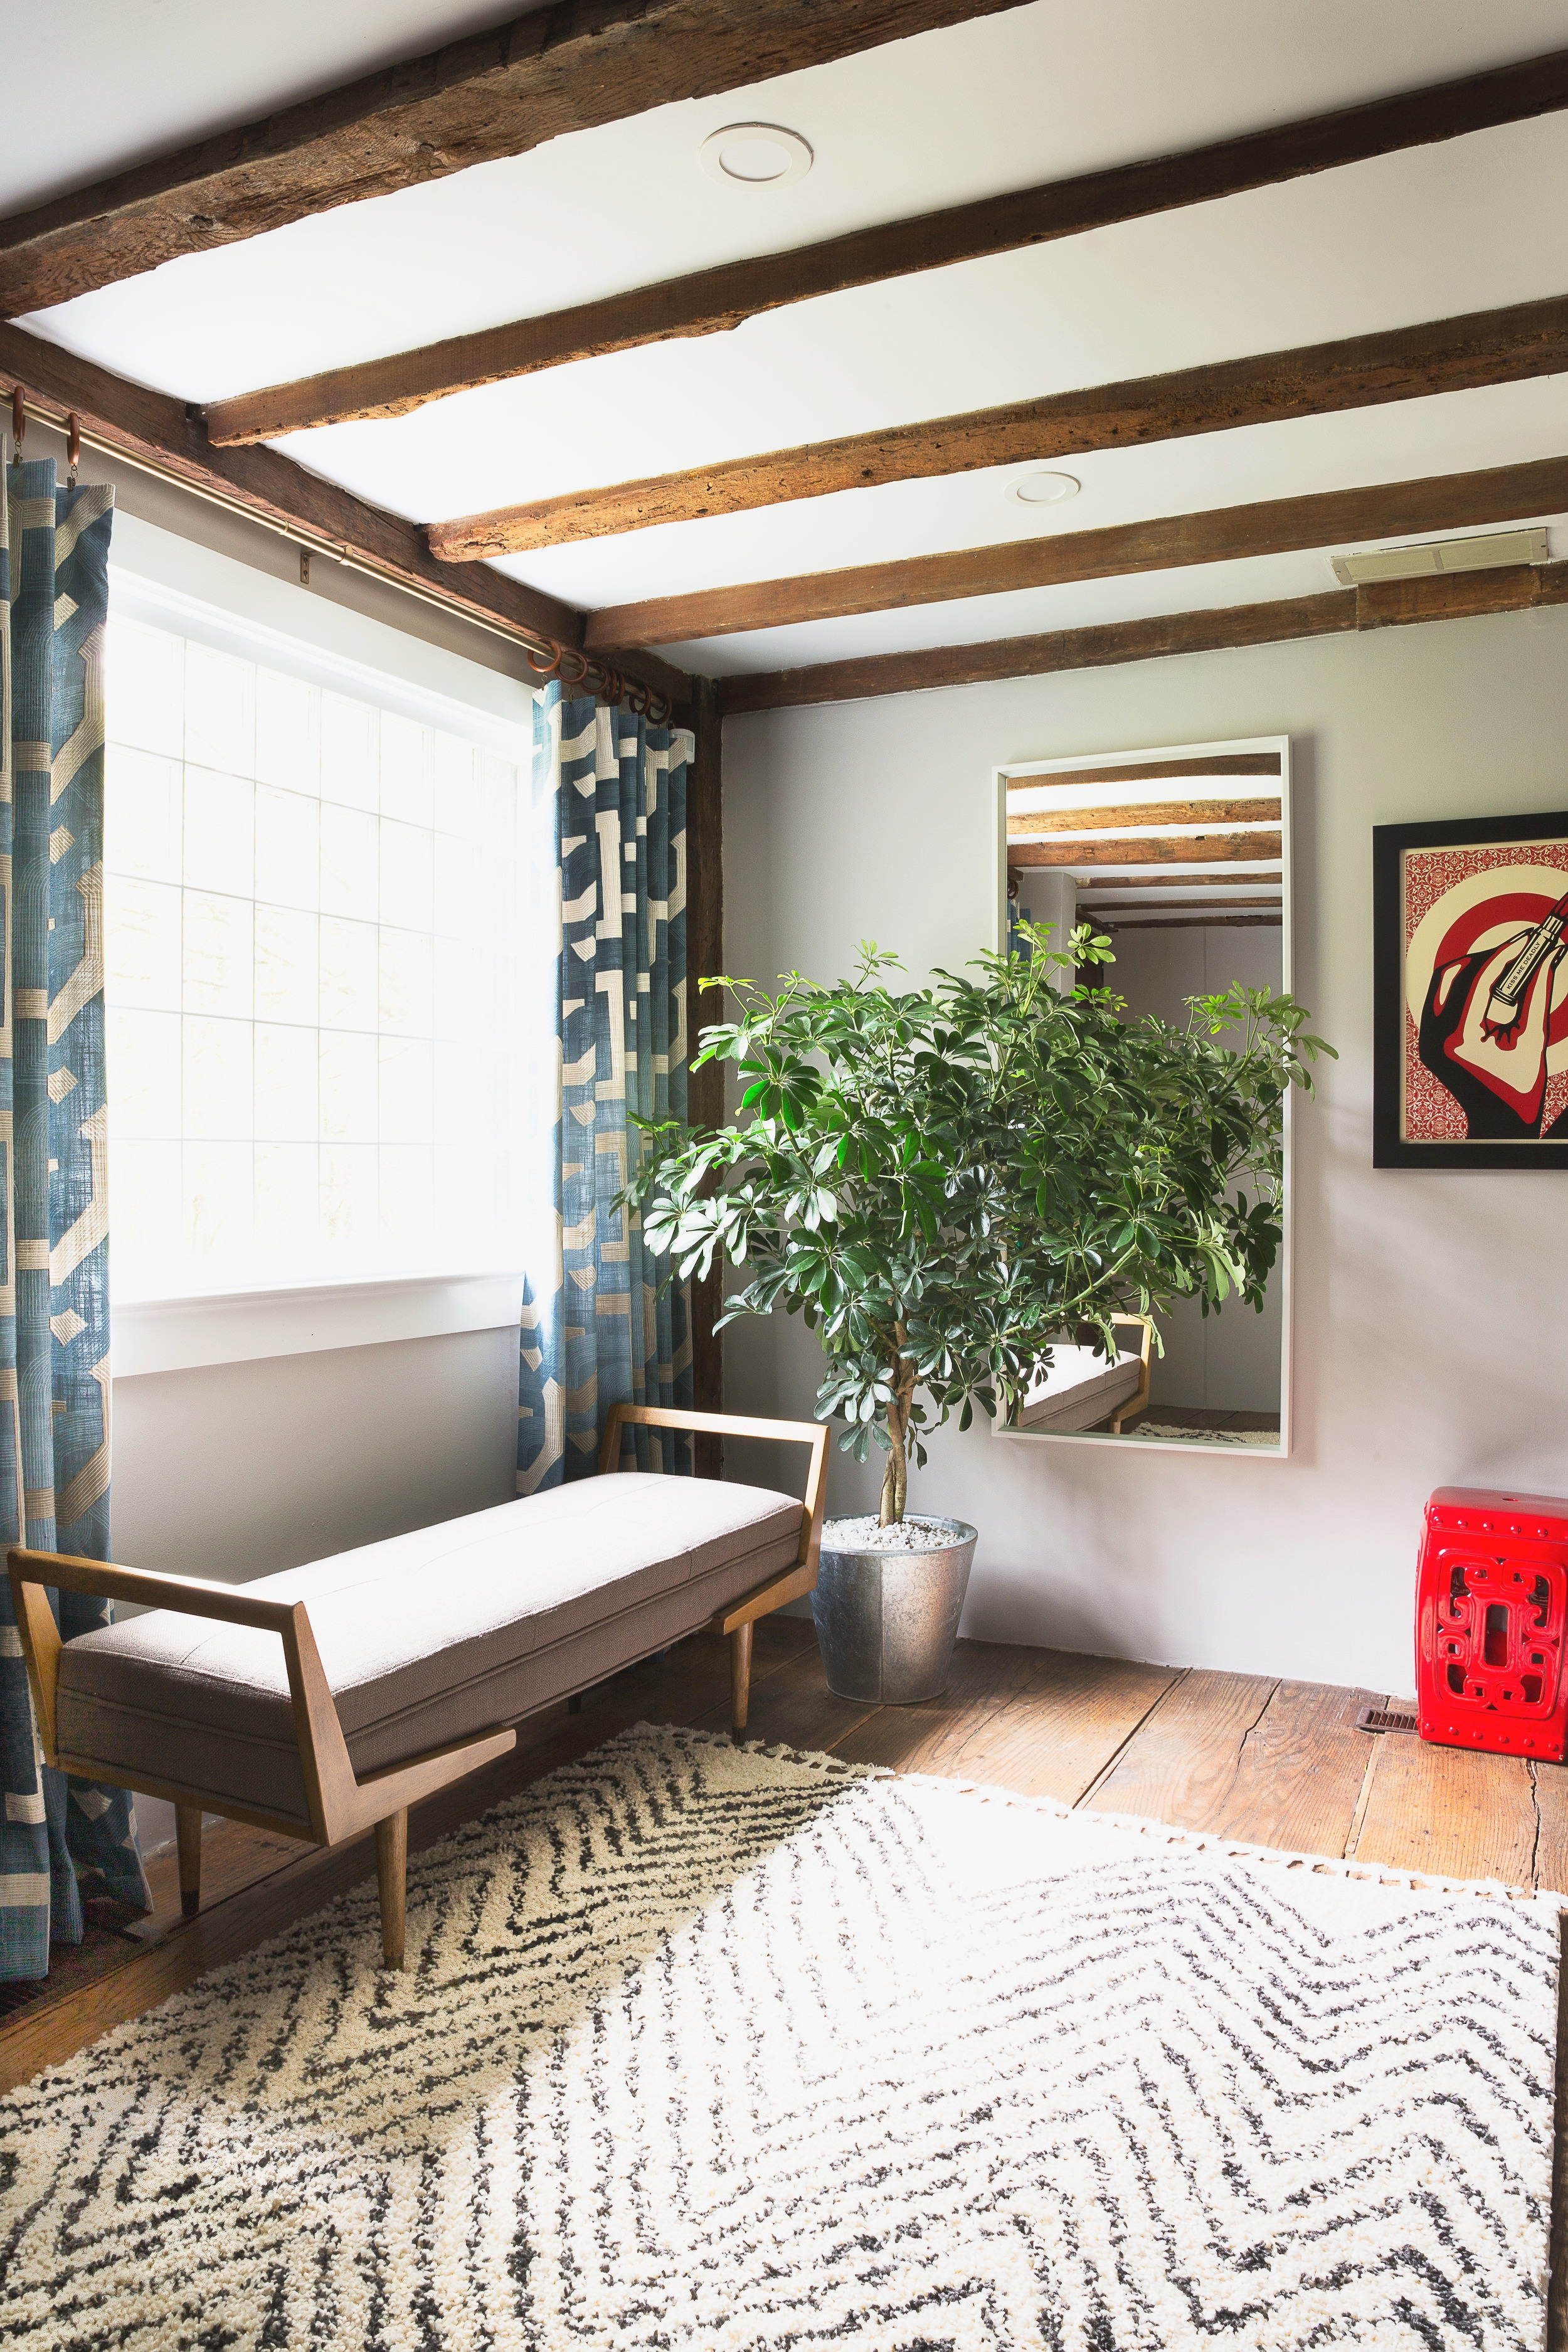 HIstoric Farmhouse living room turned mid century modern retreat with custom drapery panels designed by the Rath Project